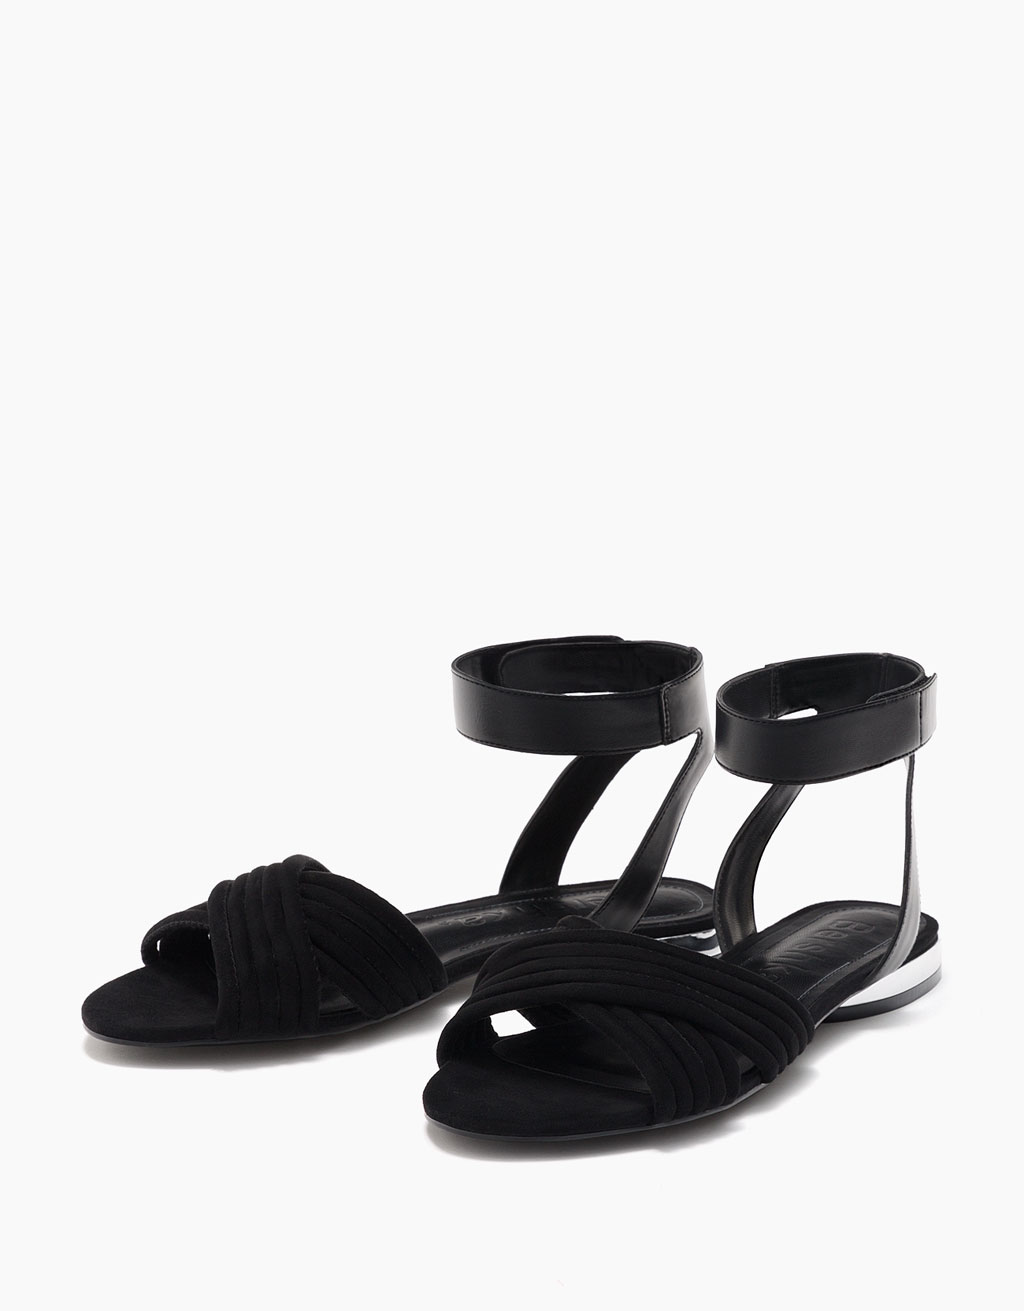 Flat crossover sandals with metallic heel